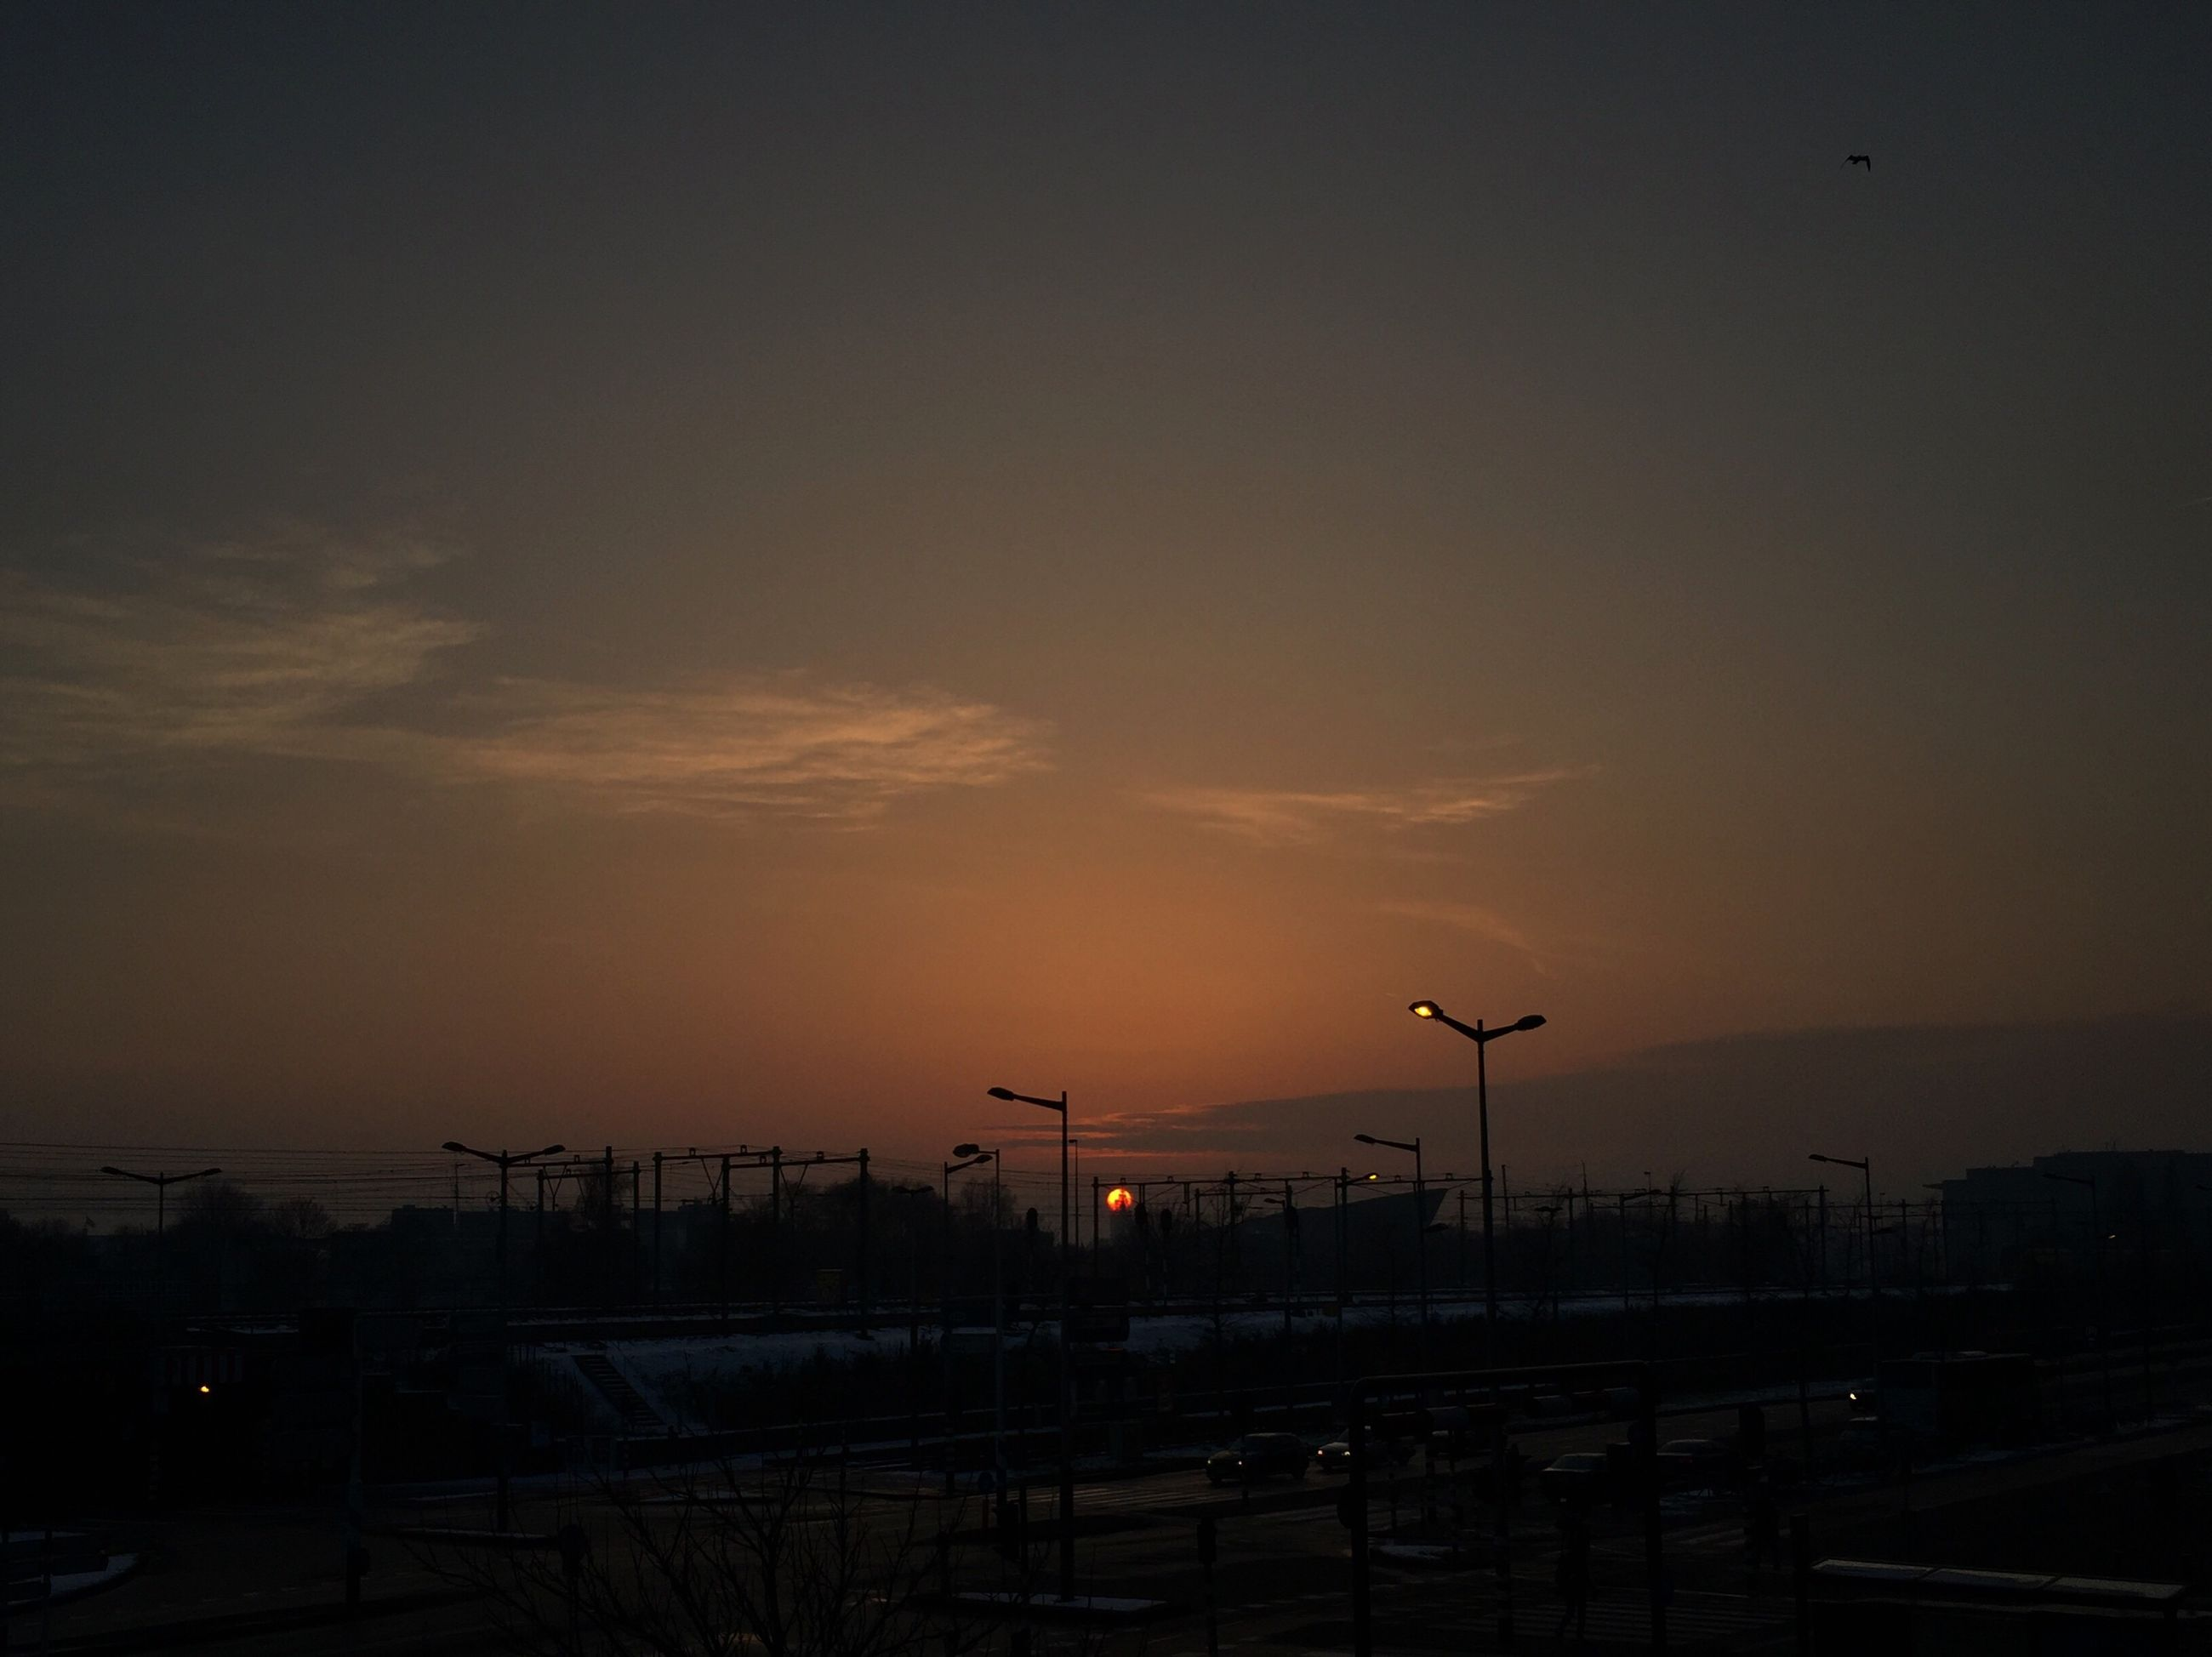 sunset, no people, beauty in nature, outdoors, sky, nature, night